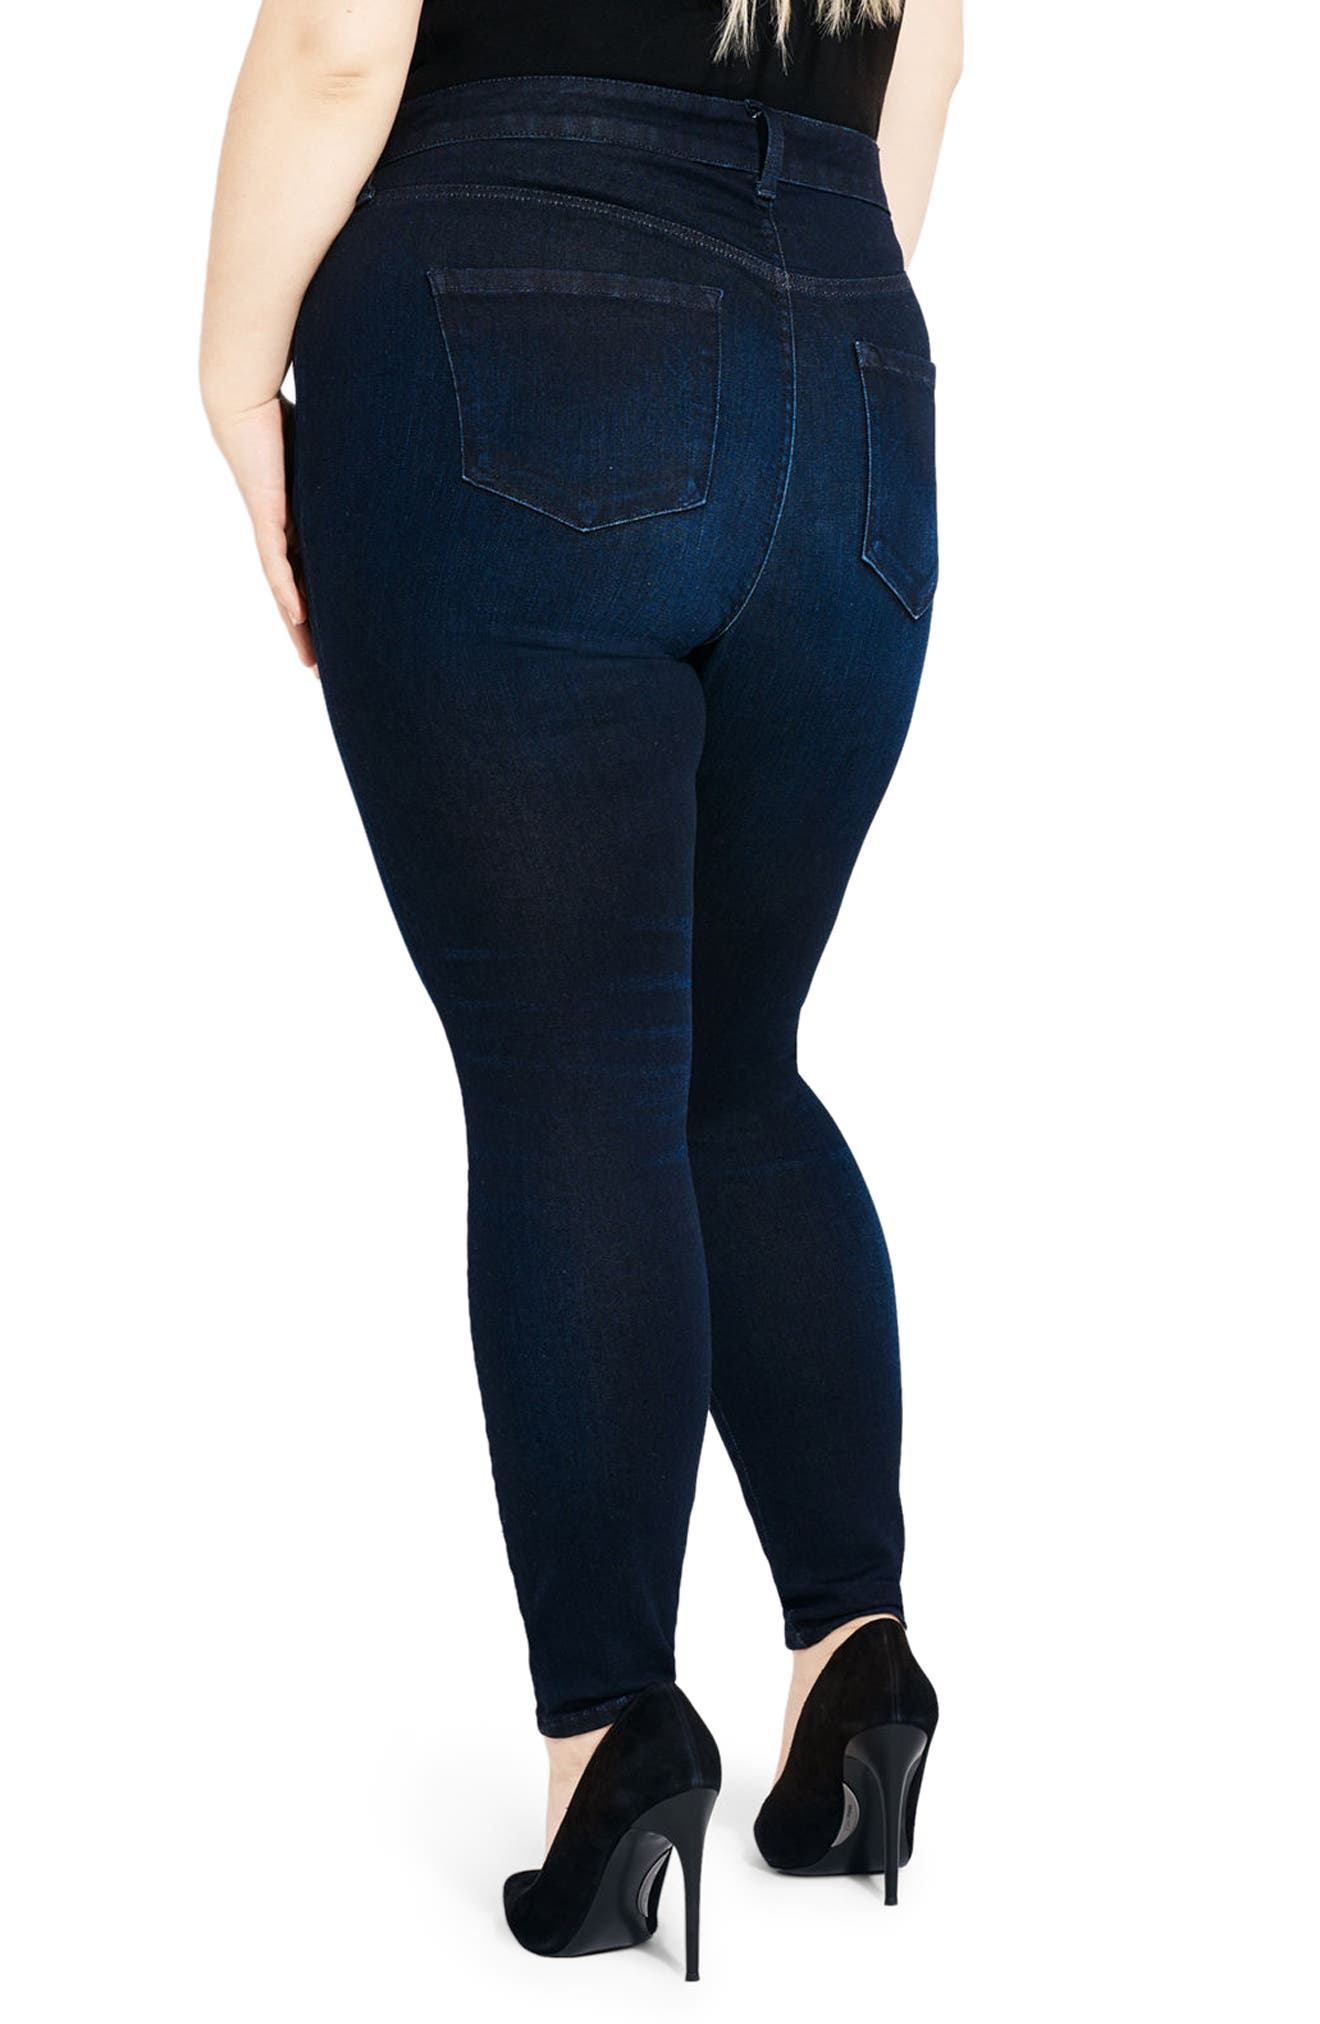 Alternate Image 2  - AYR The One Love High Waist Skinny Jeans (Jac's Jean) (Plus Size)